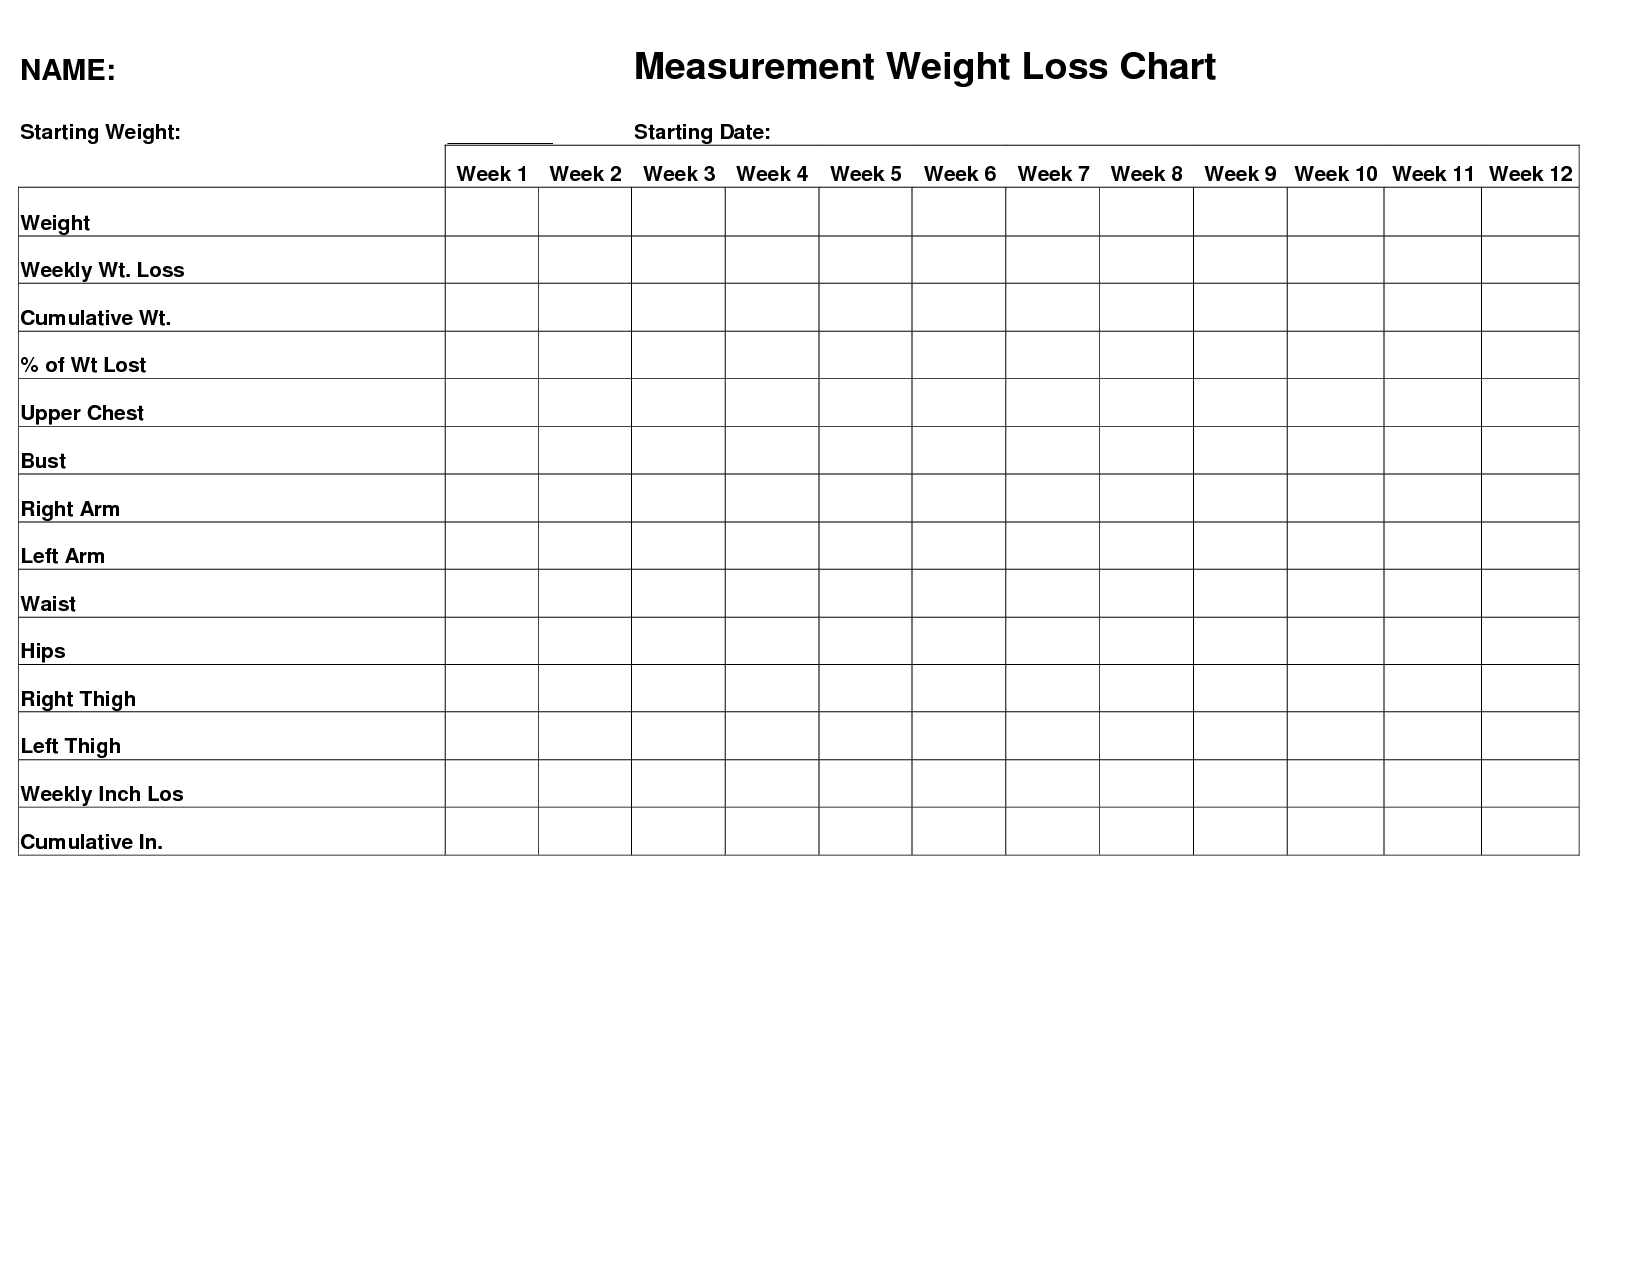 Printable weight loss chart weight loss weight and inch loss printable weight loss chart weight loss nvjuhfo Choice Image